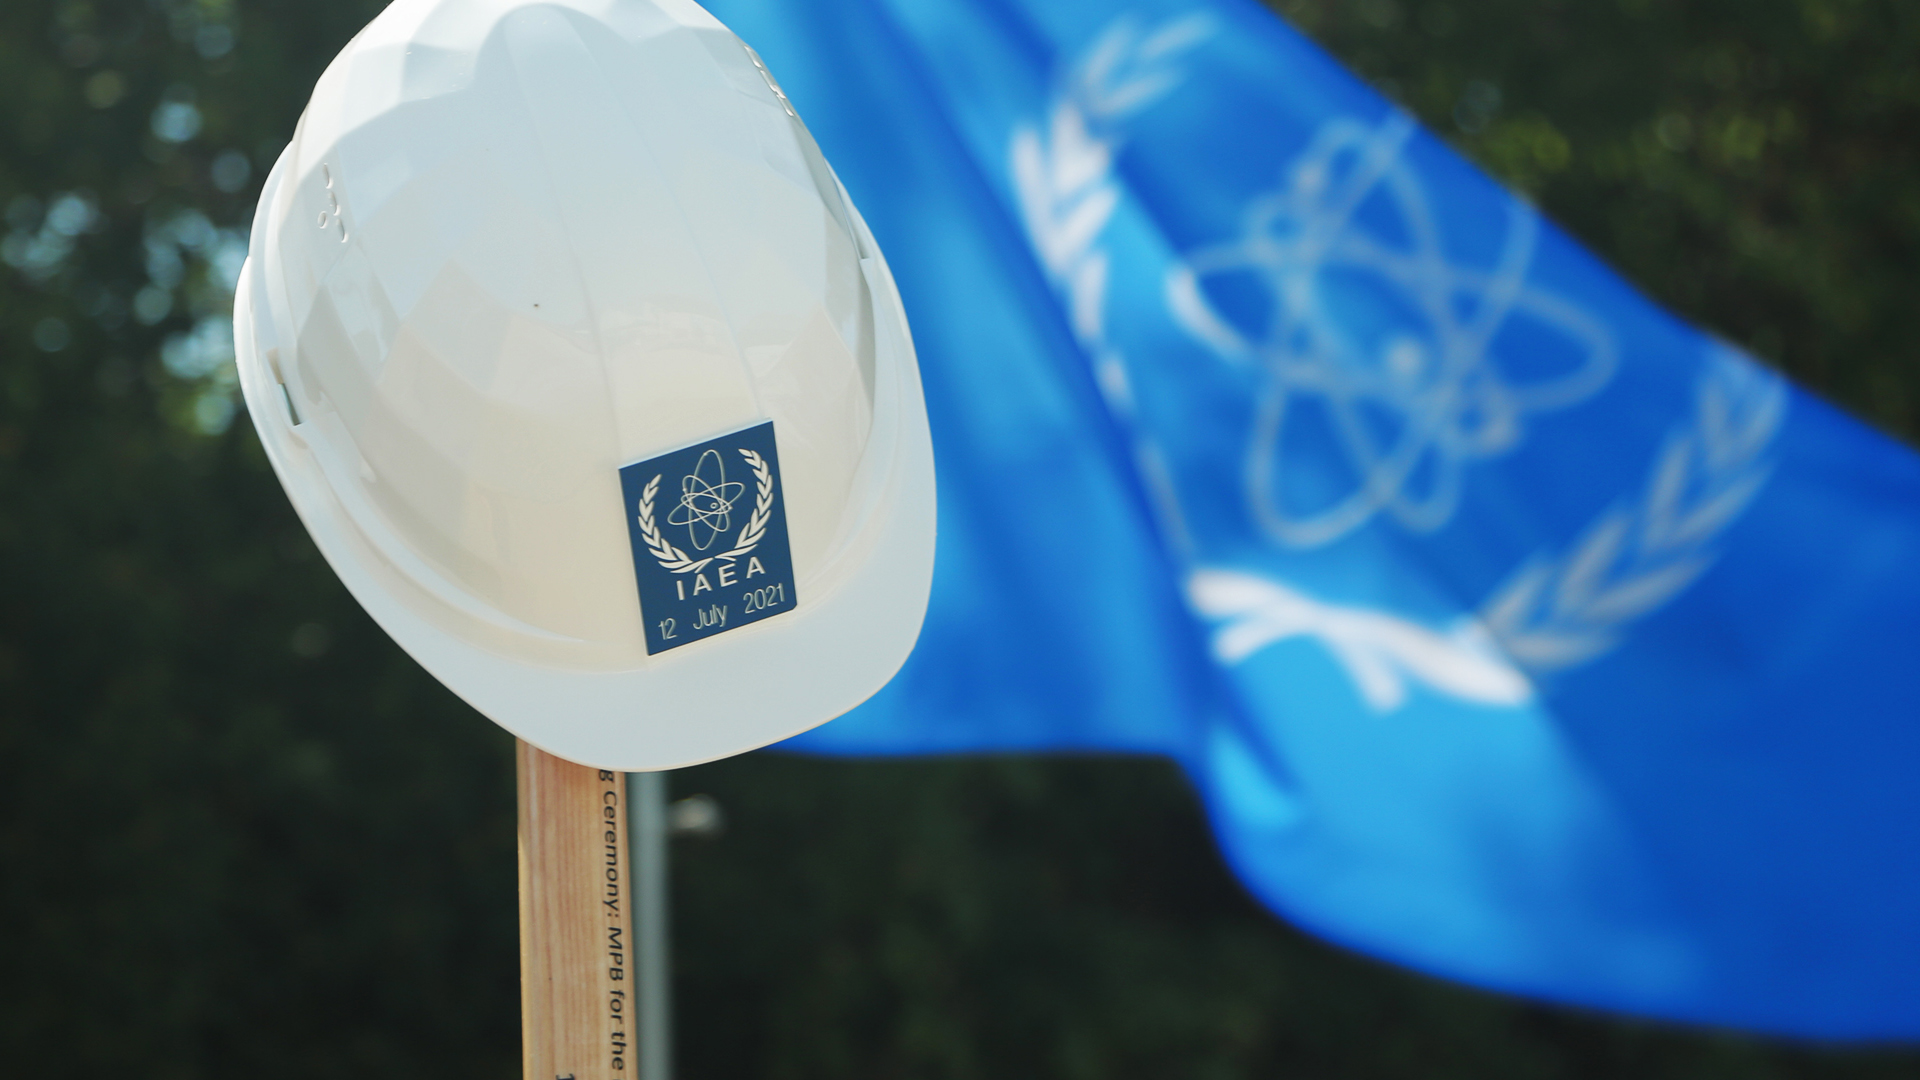 New IAEA training center to strengthen nuclear safety